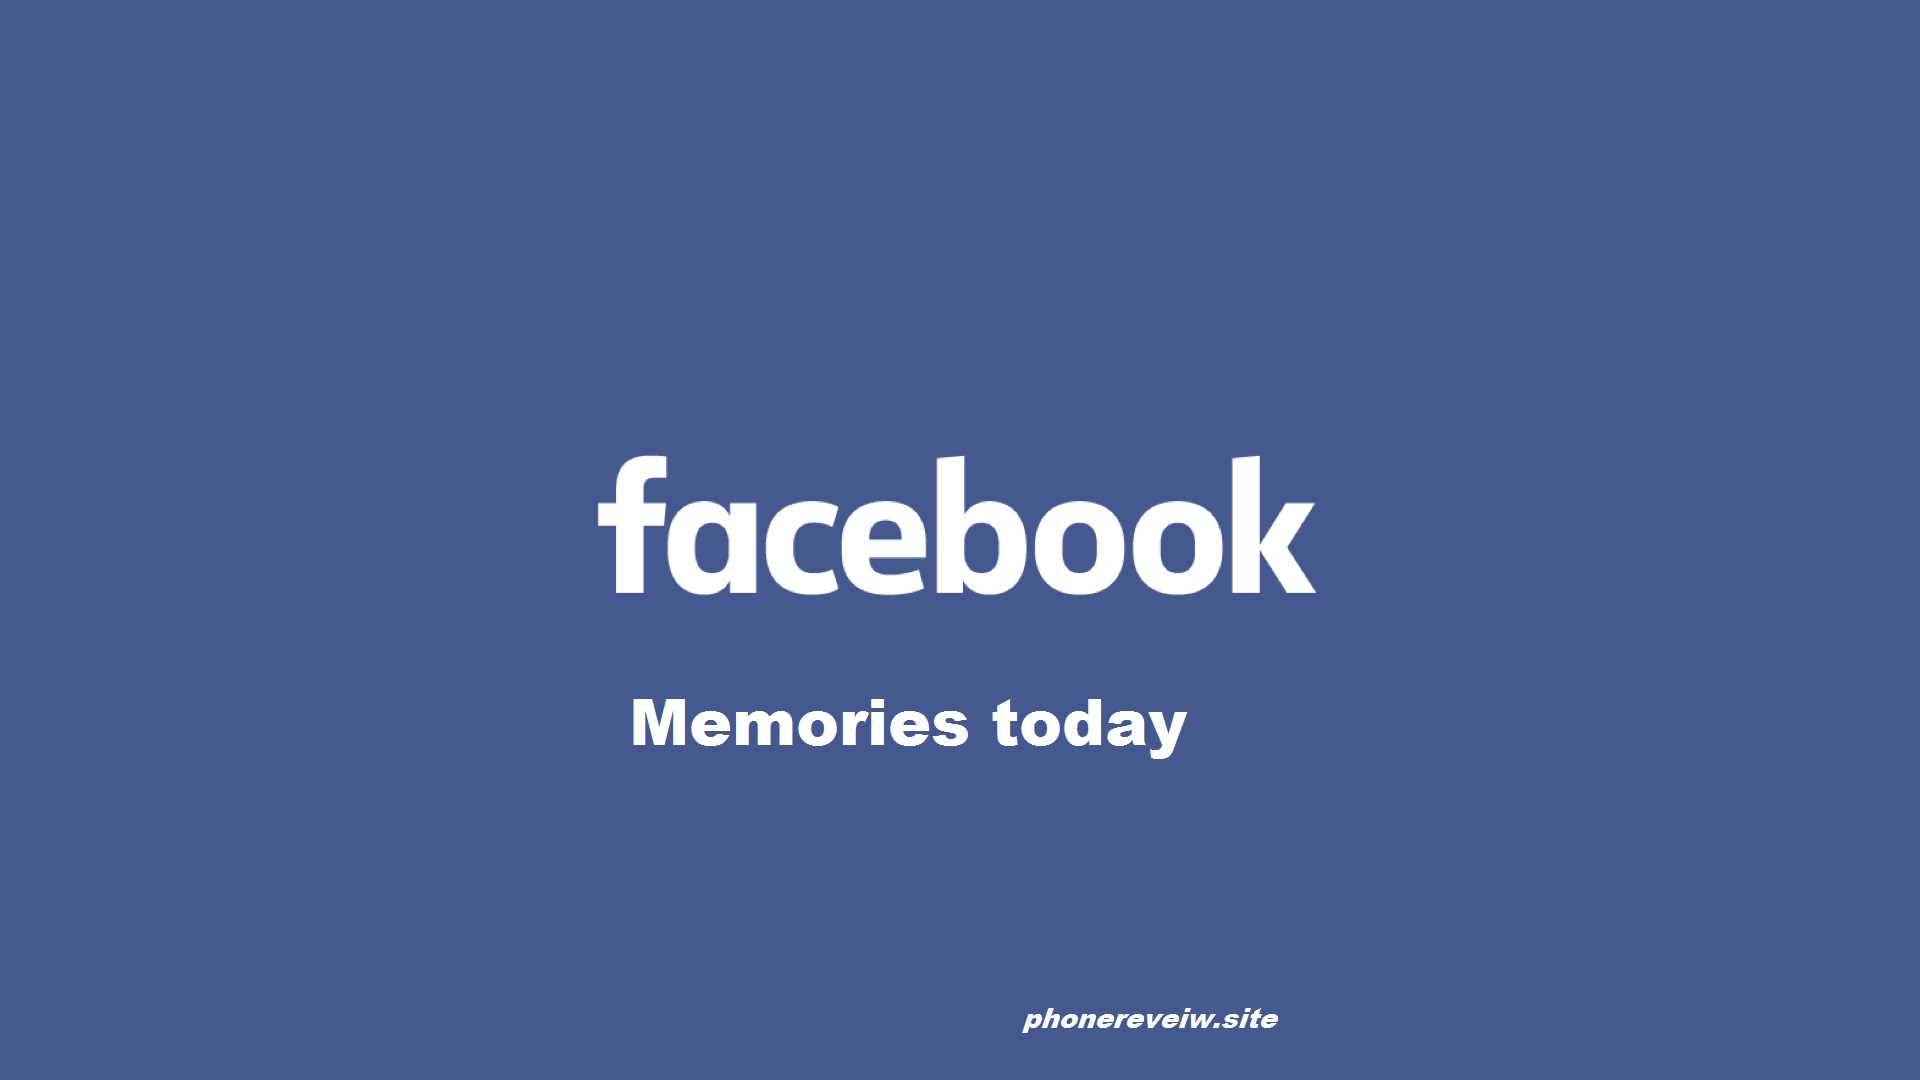 Where can I Find my Memories Today on Facebook